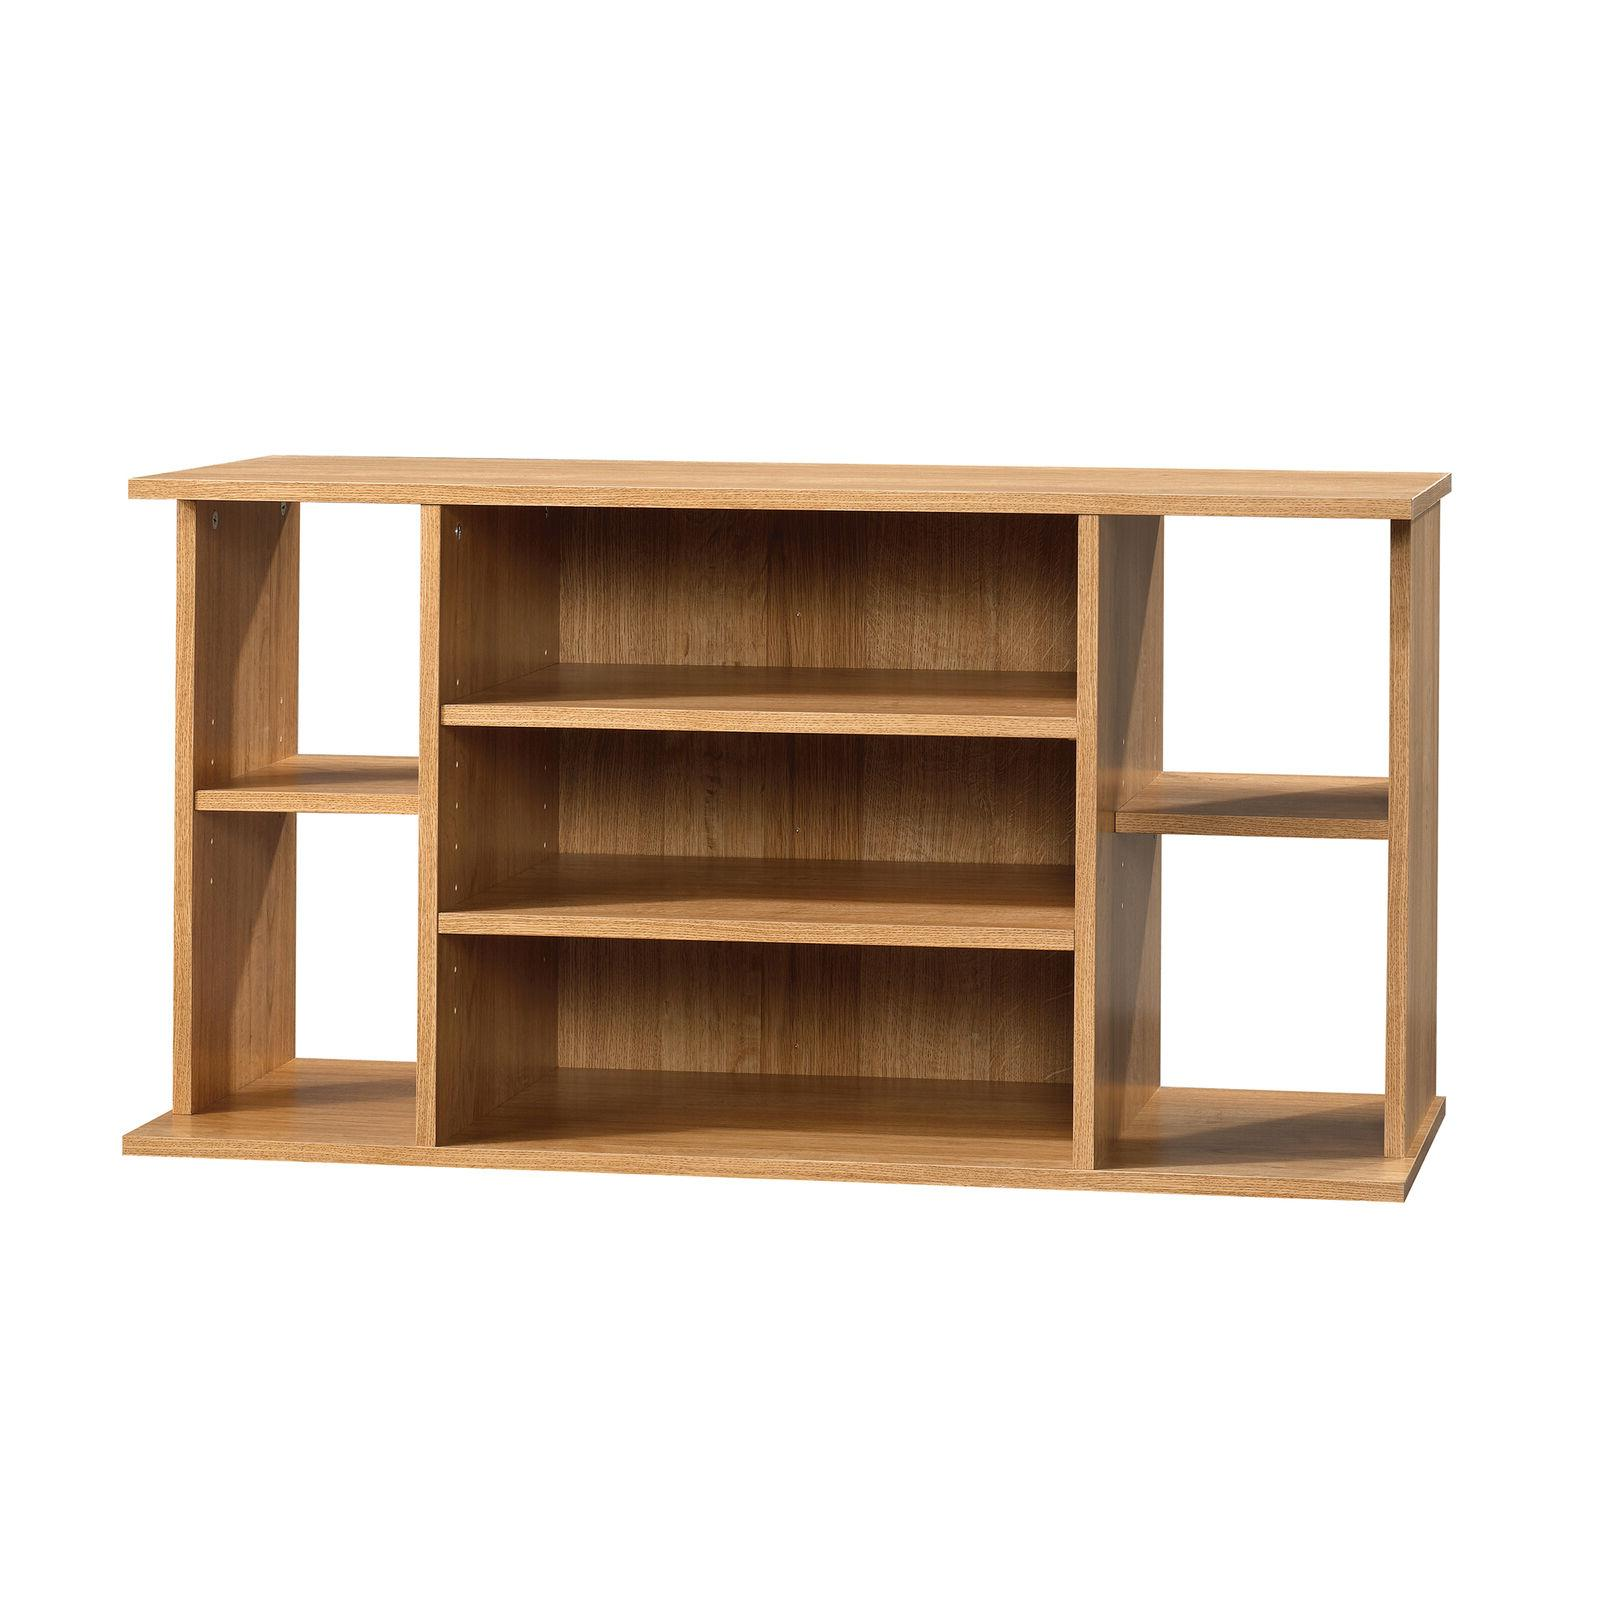 Tv Stand Center Unit Shelves Table up